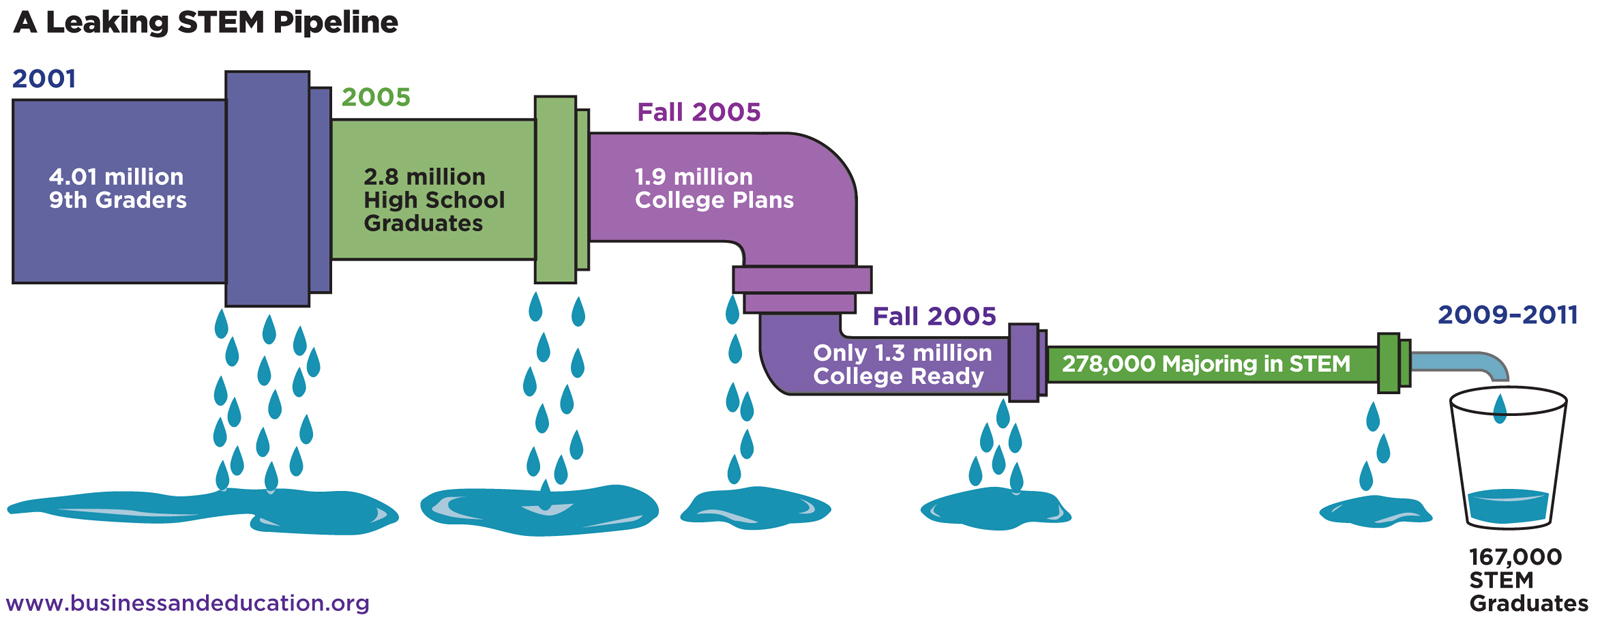 The idea of the leaky STEM pipeline has been around for many years.